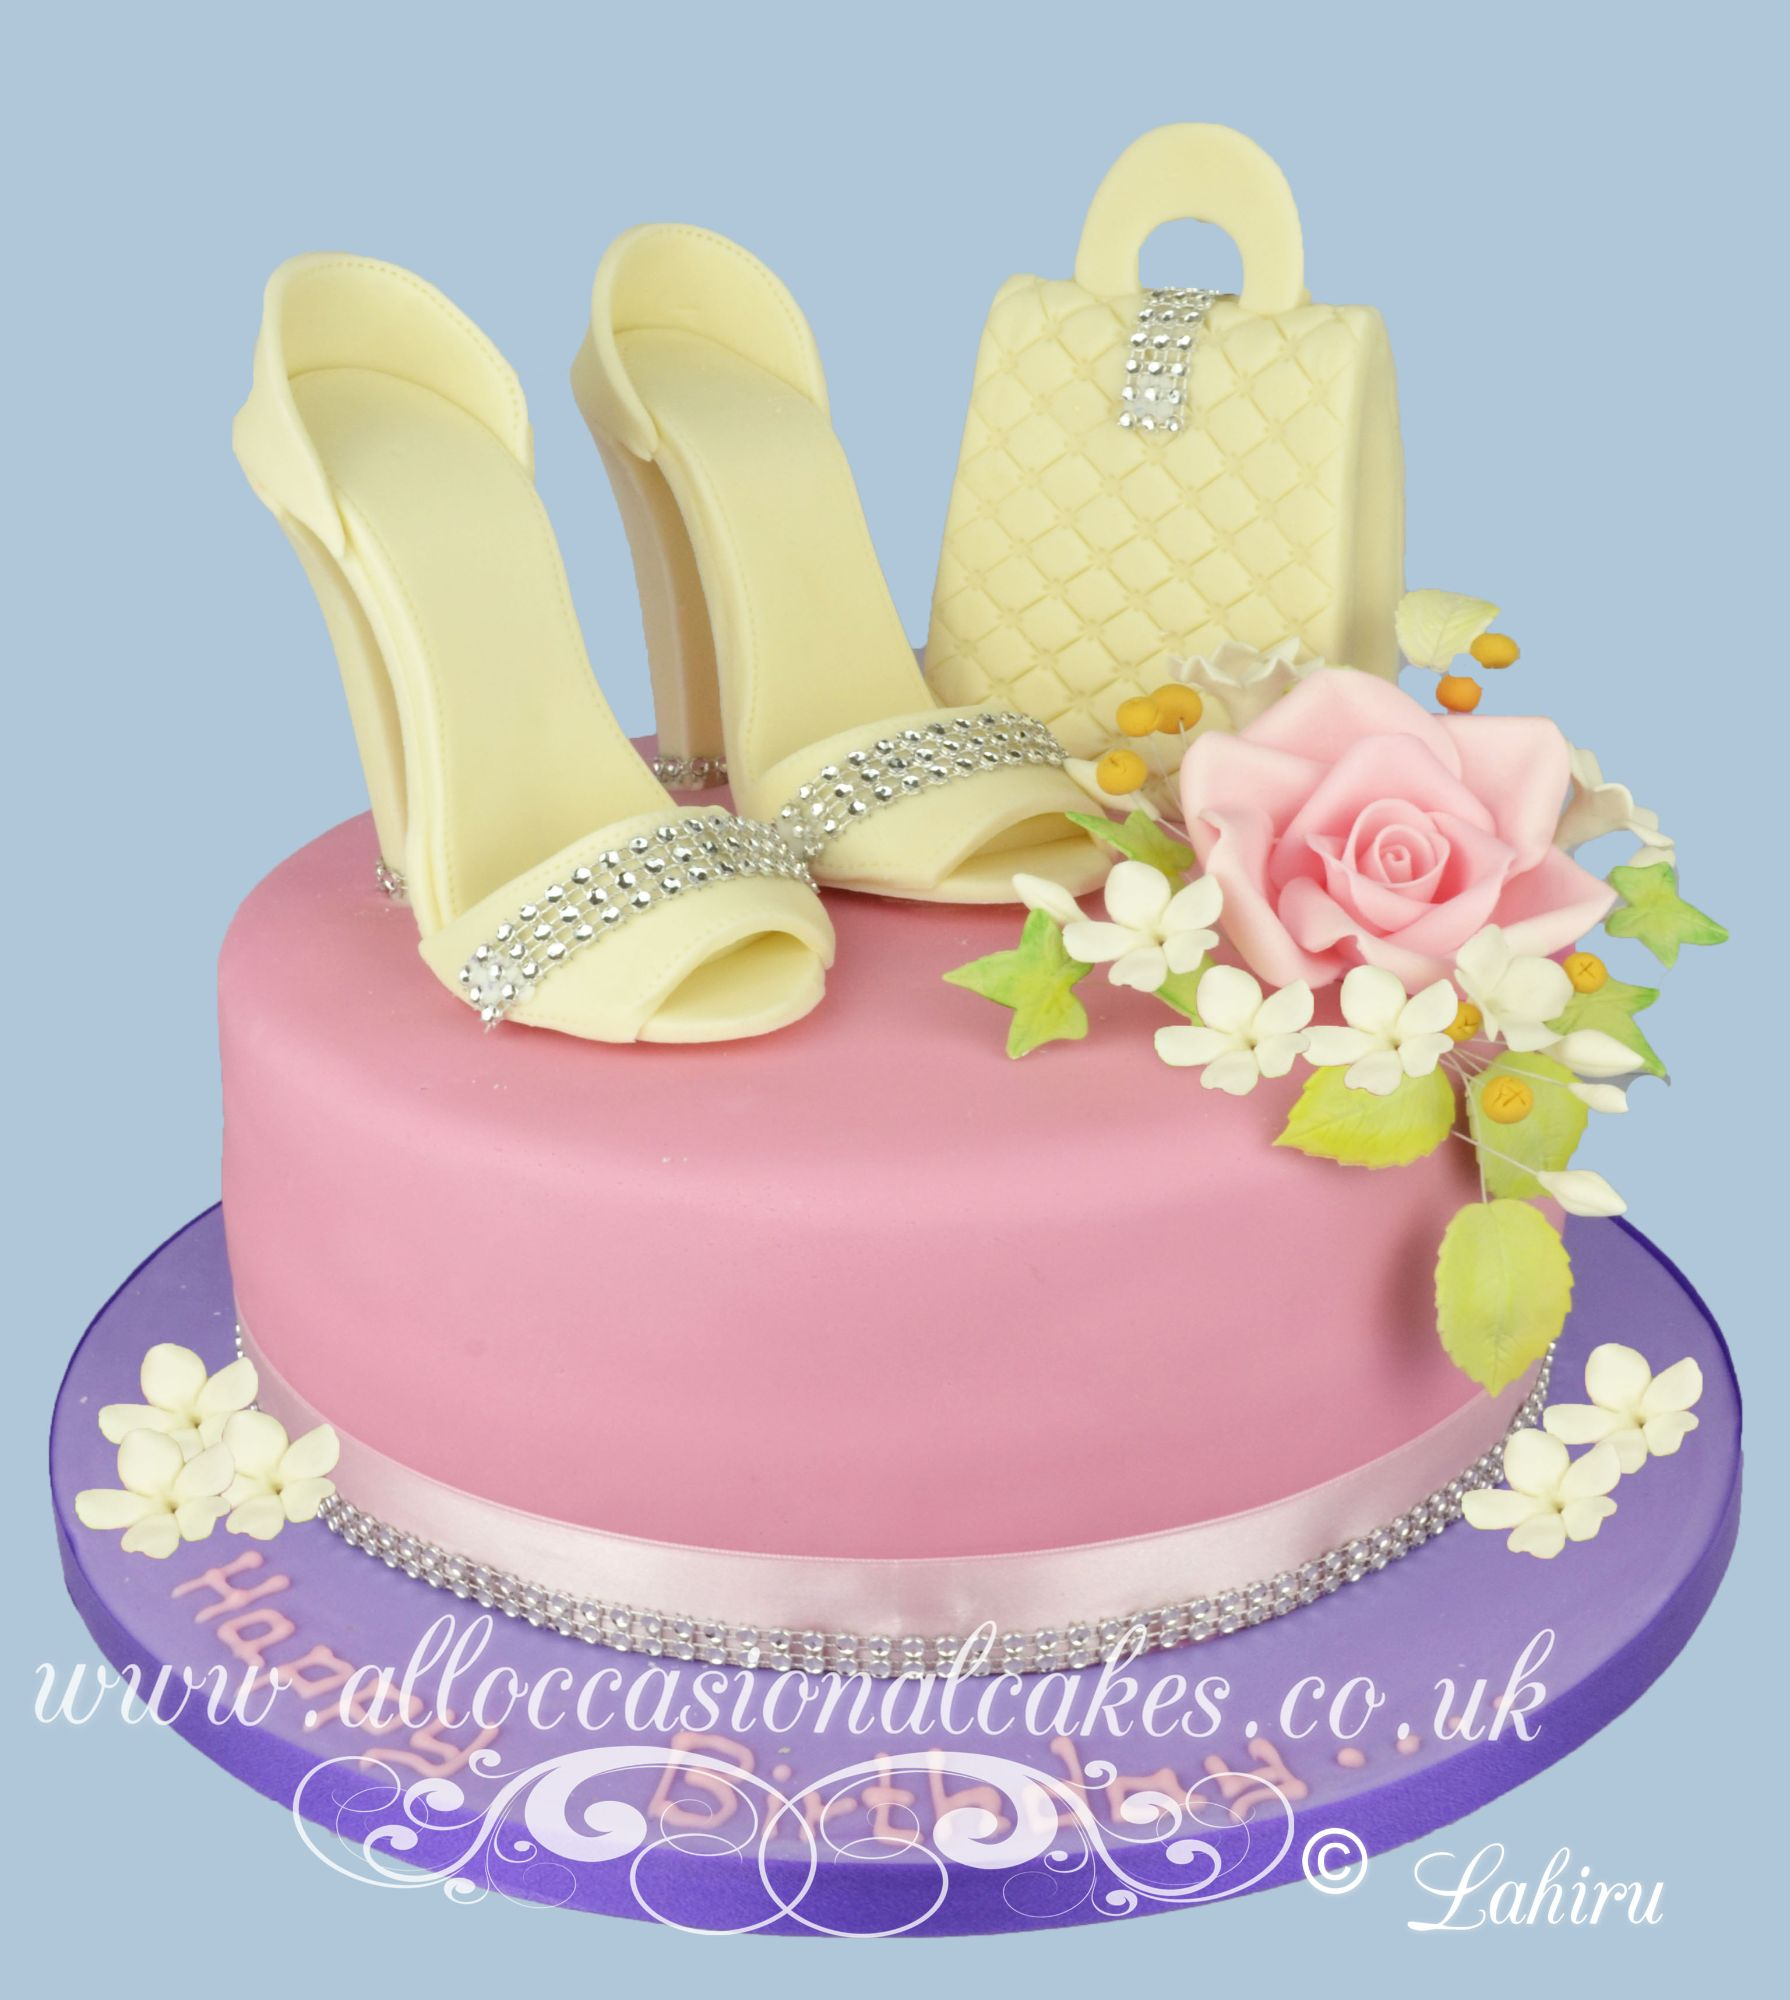 cream high heels handbag with a flower bunch cake